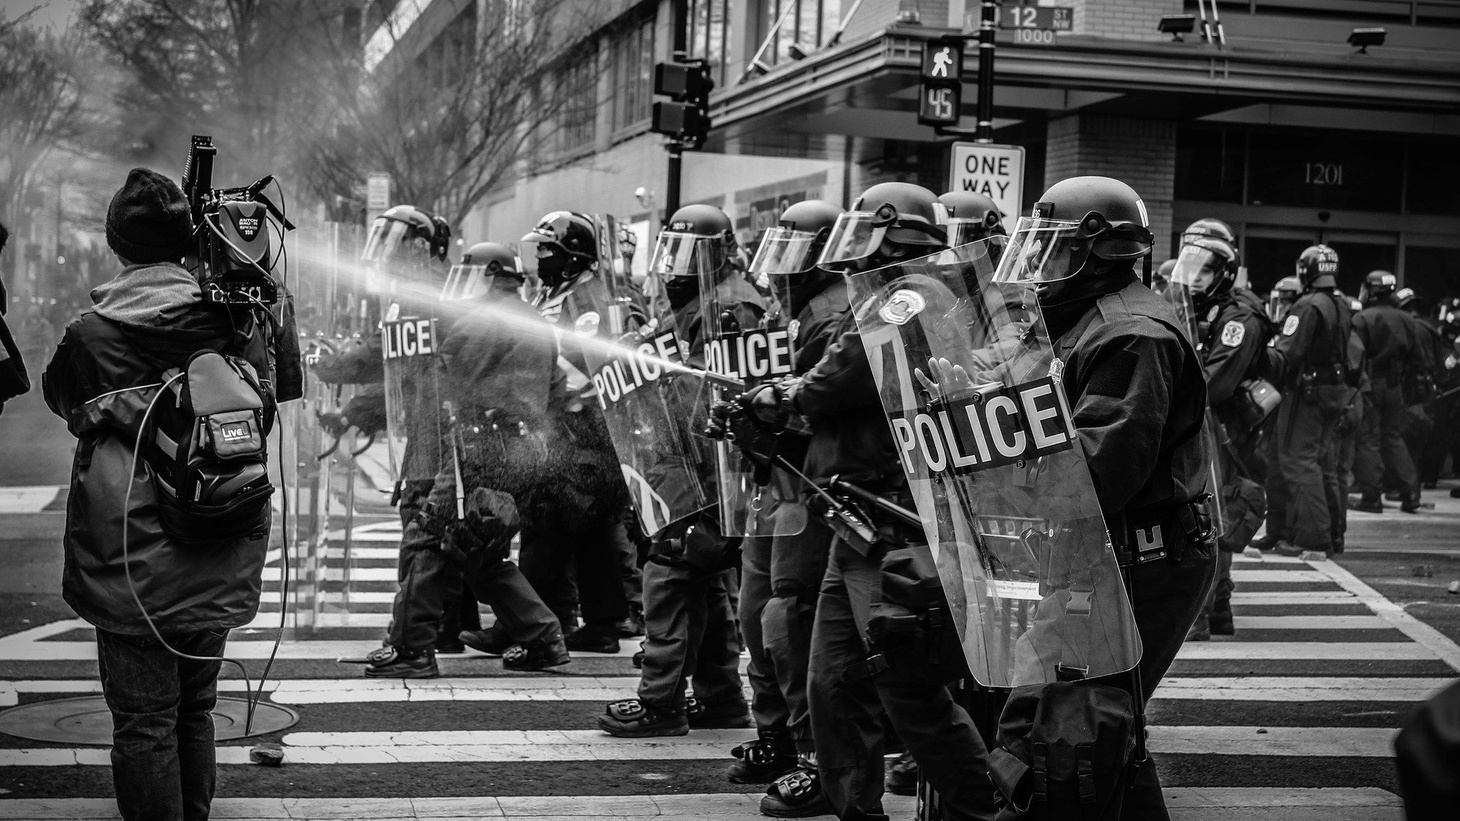 Following continued protests around the world, Hollywood reckons with the way it portrays police officers in films and television.